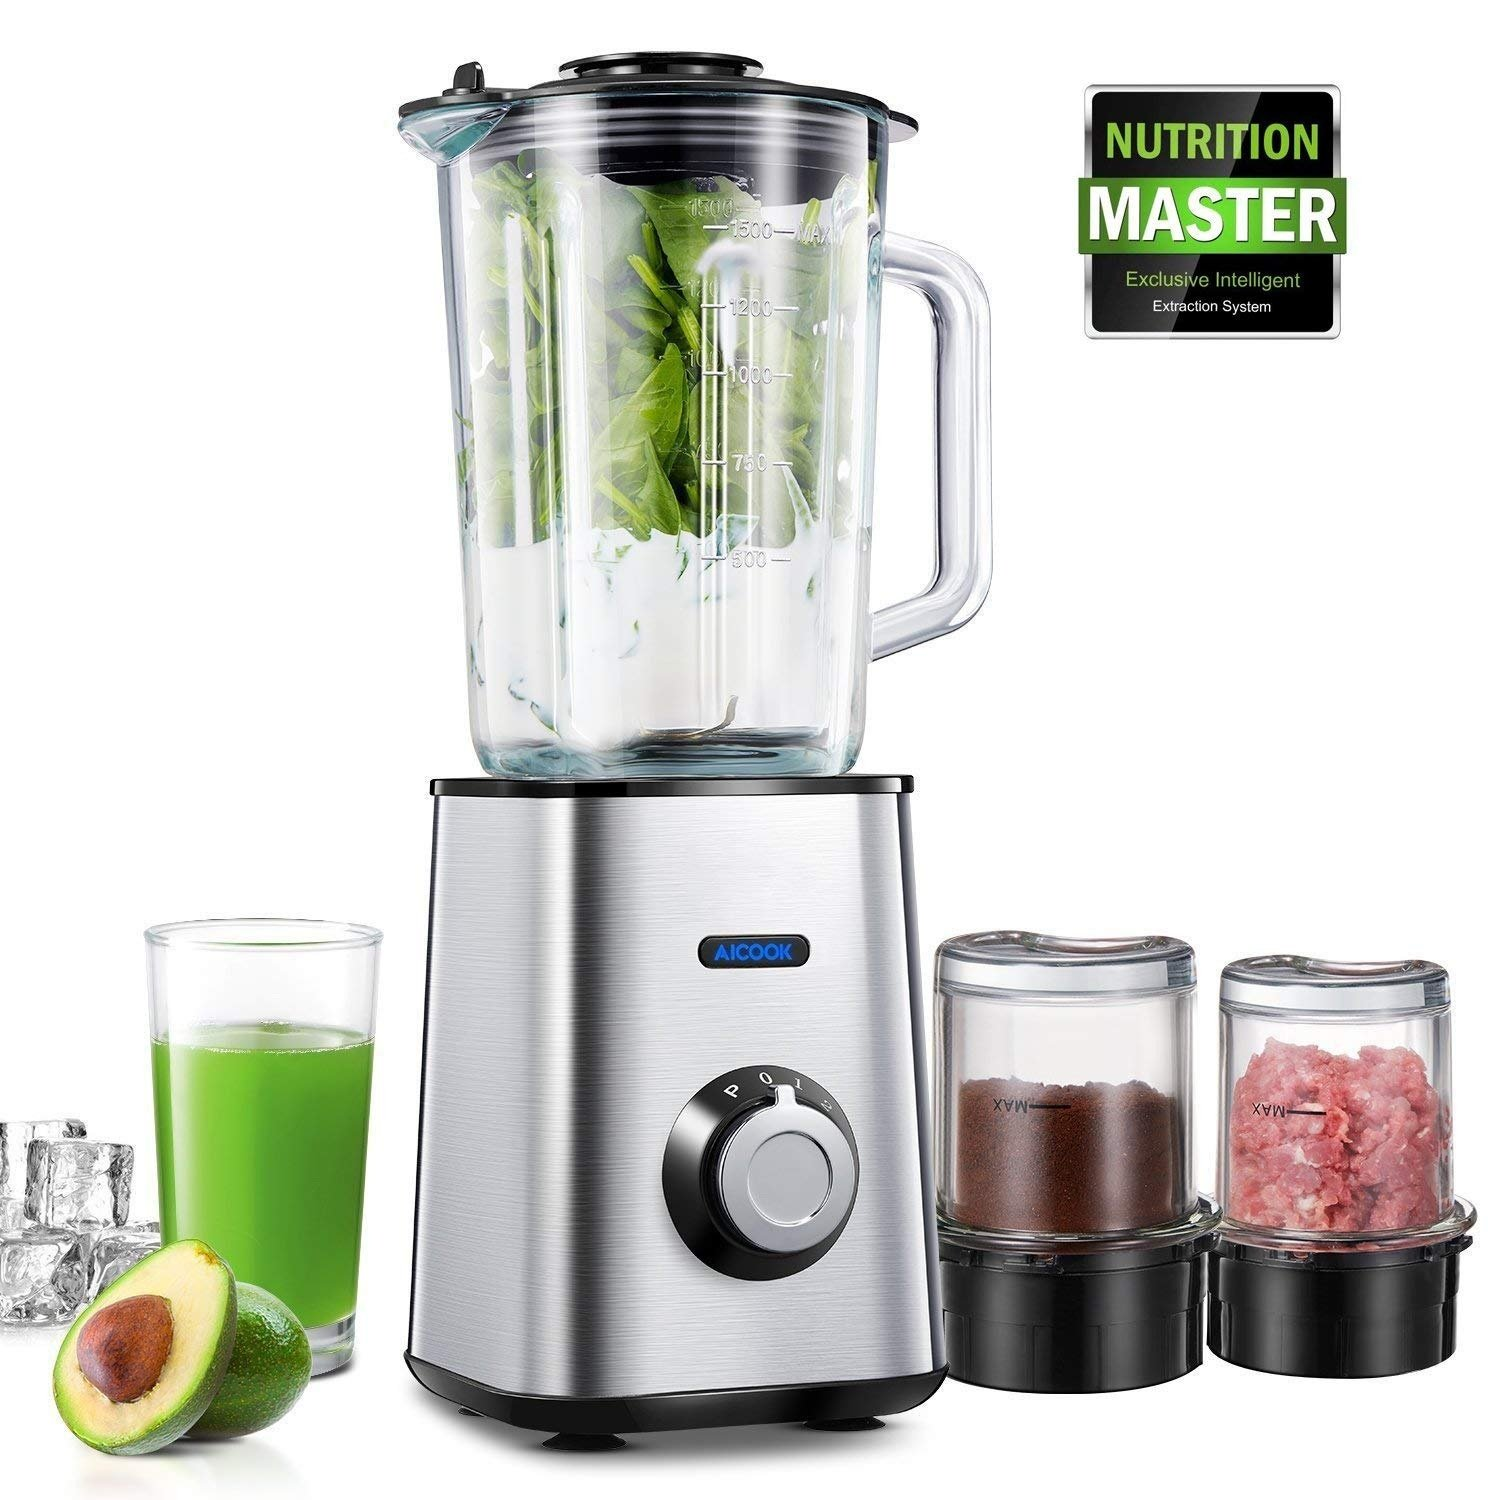 Aicook Blender, Smoothie Blender with 3-Cup Glass Jar,  450W Blender for Shakes and Smoothies with Grinding Cup and Meat Mincing Cup